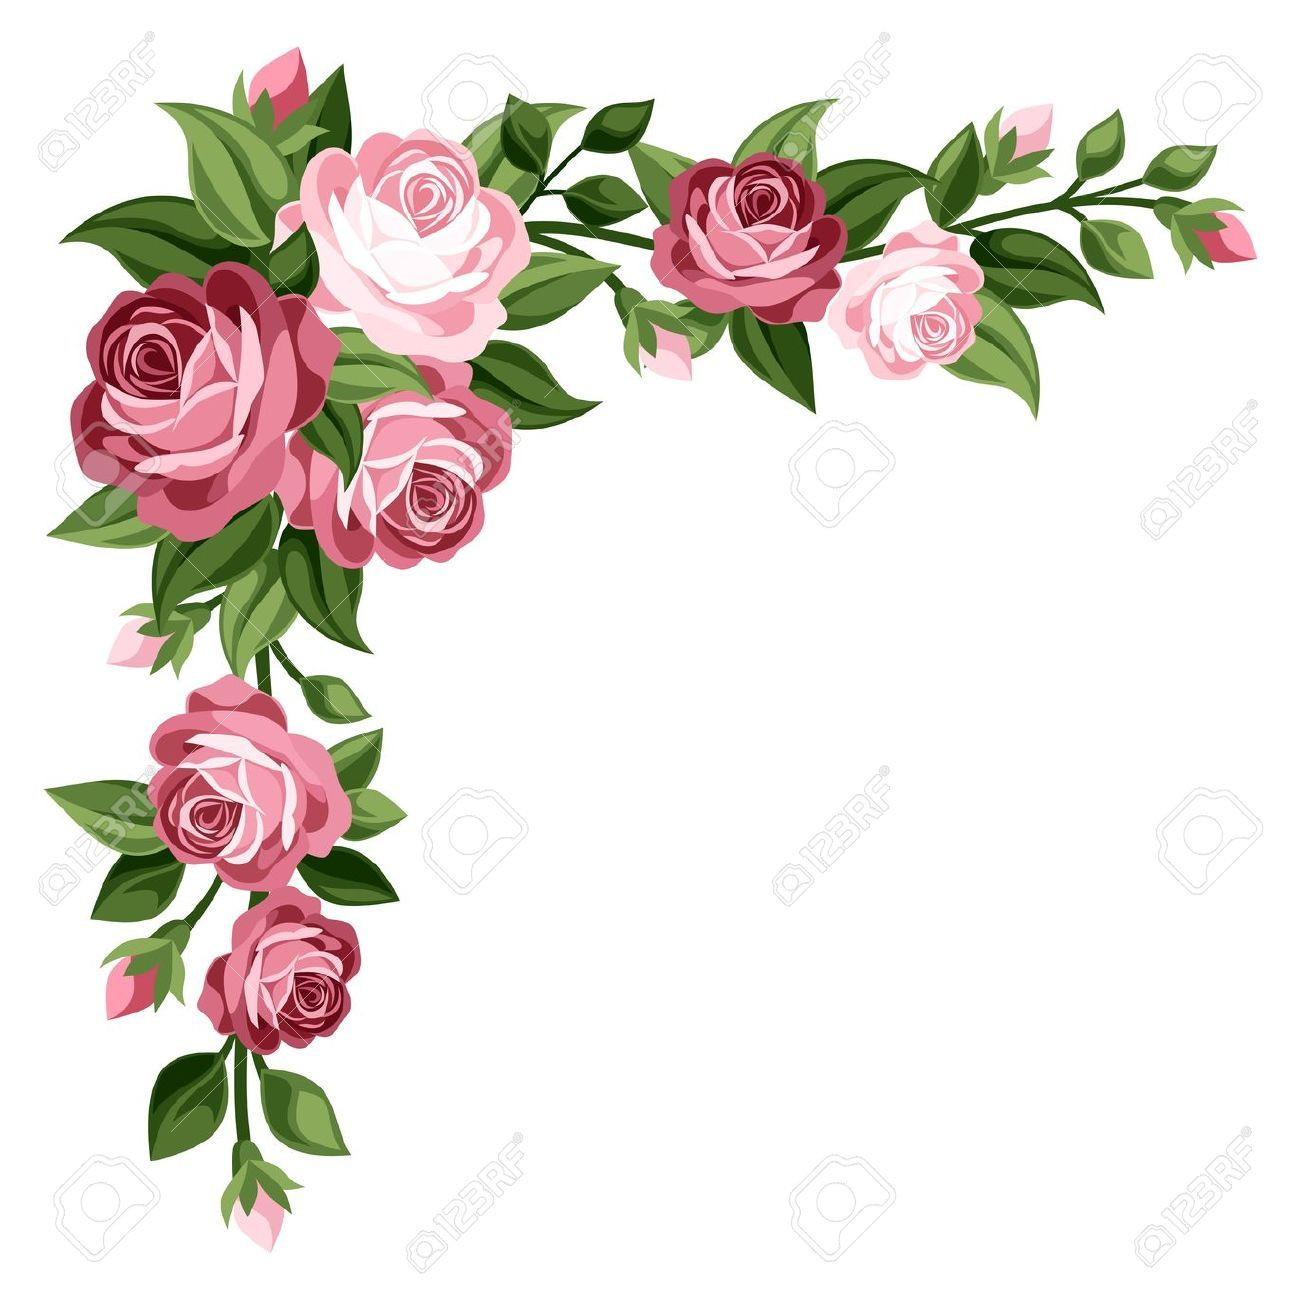 Rose flower tags pinterest. Bouquet clipart border